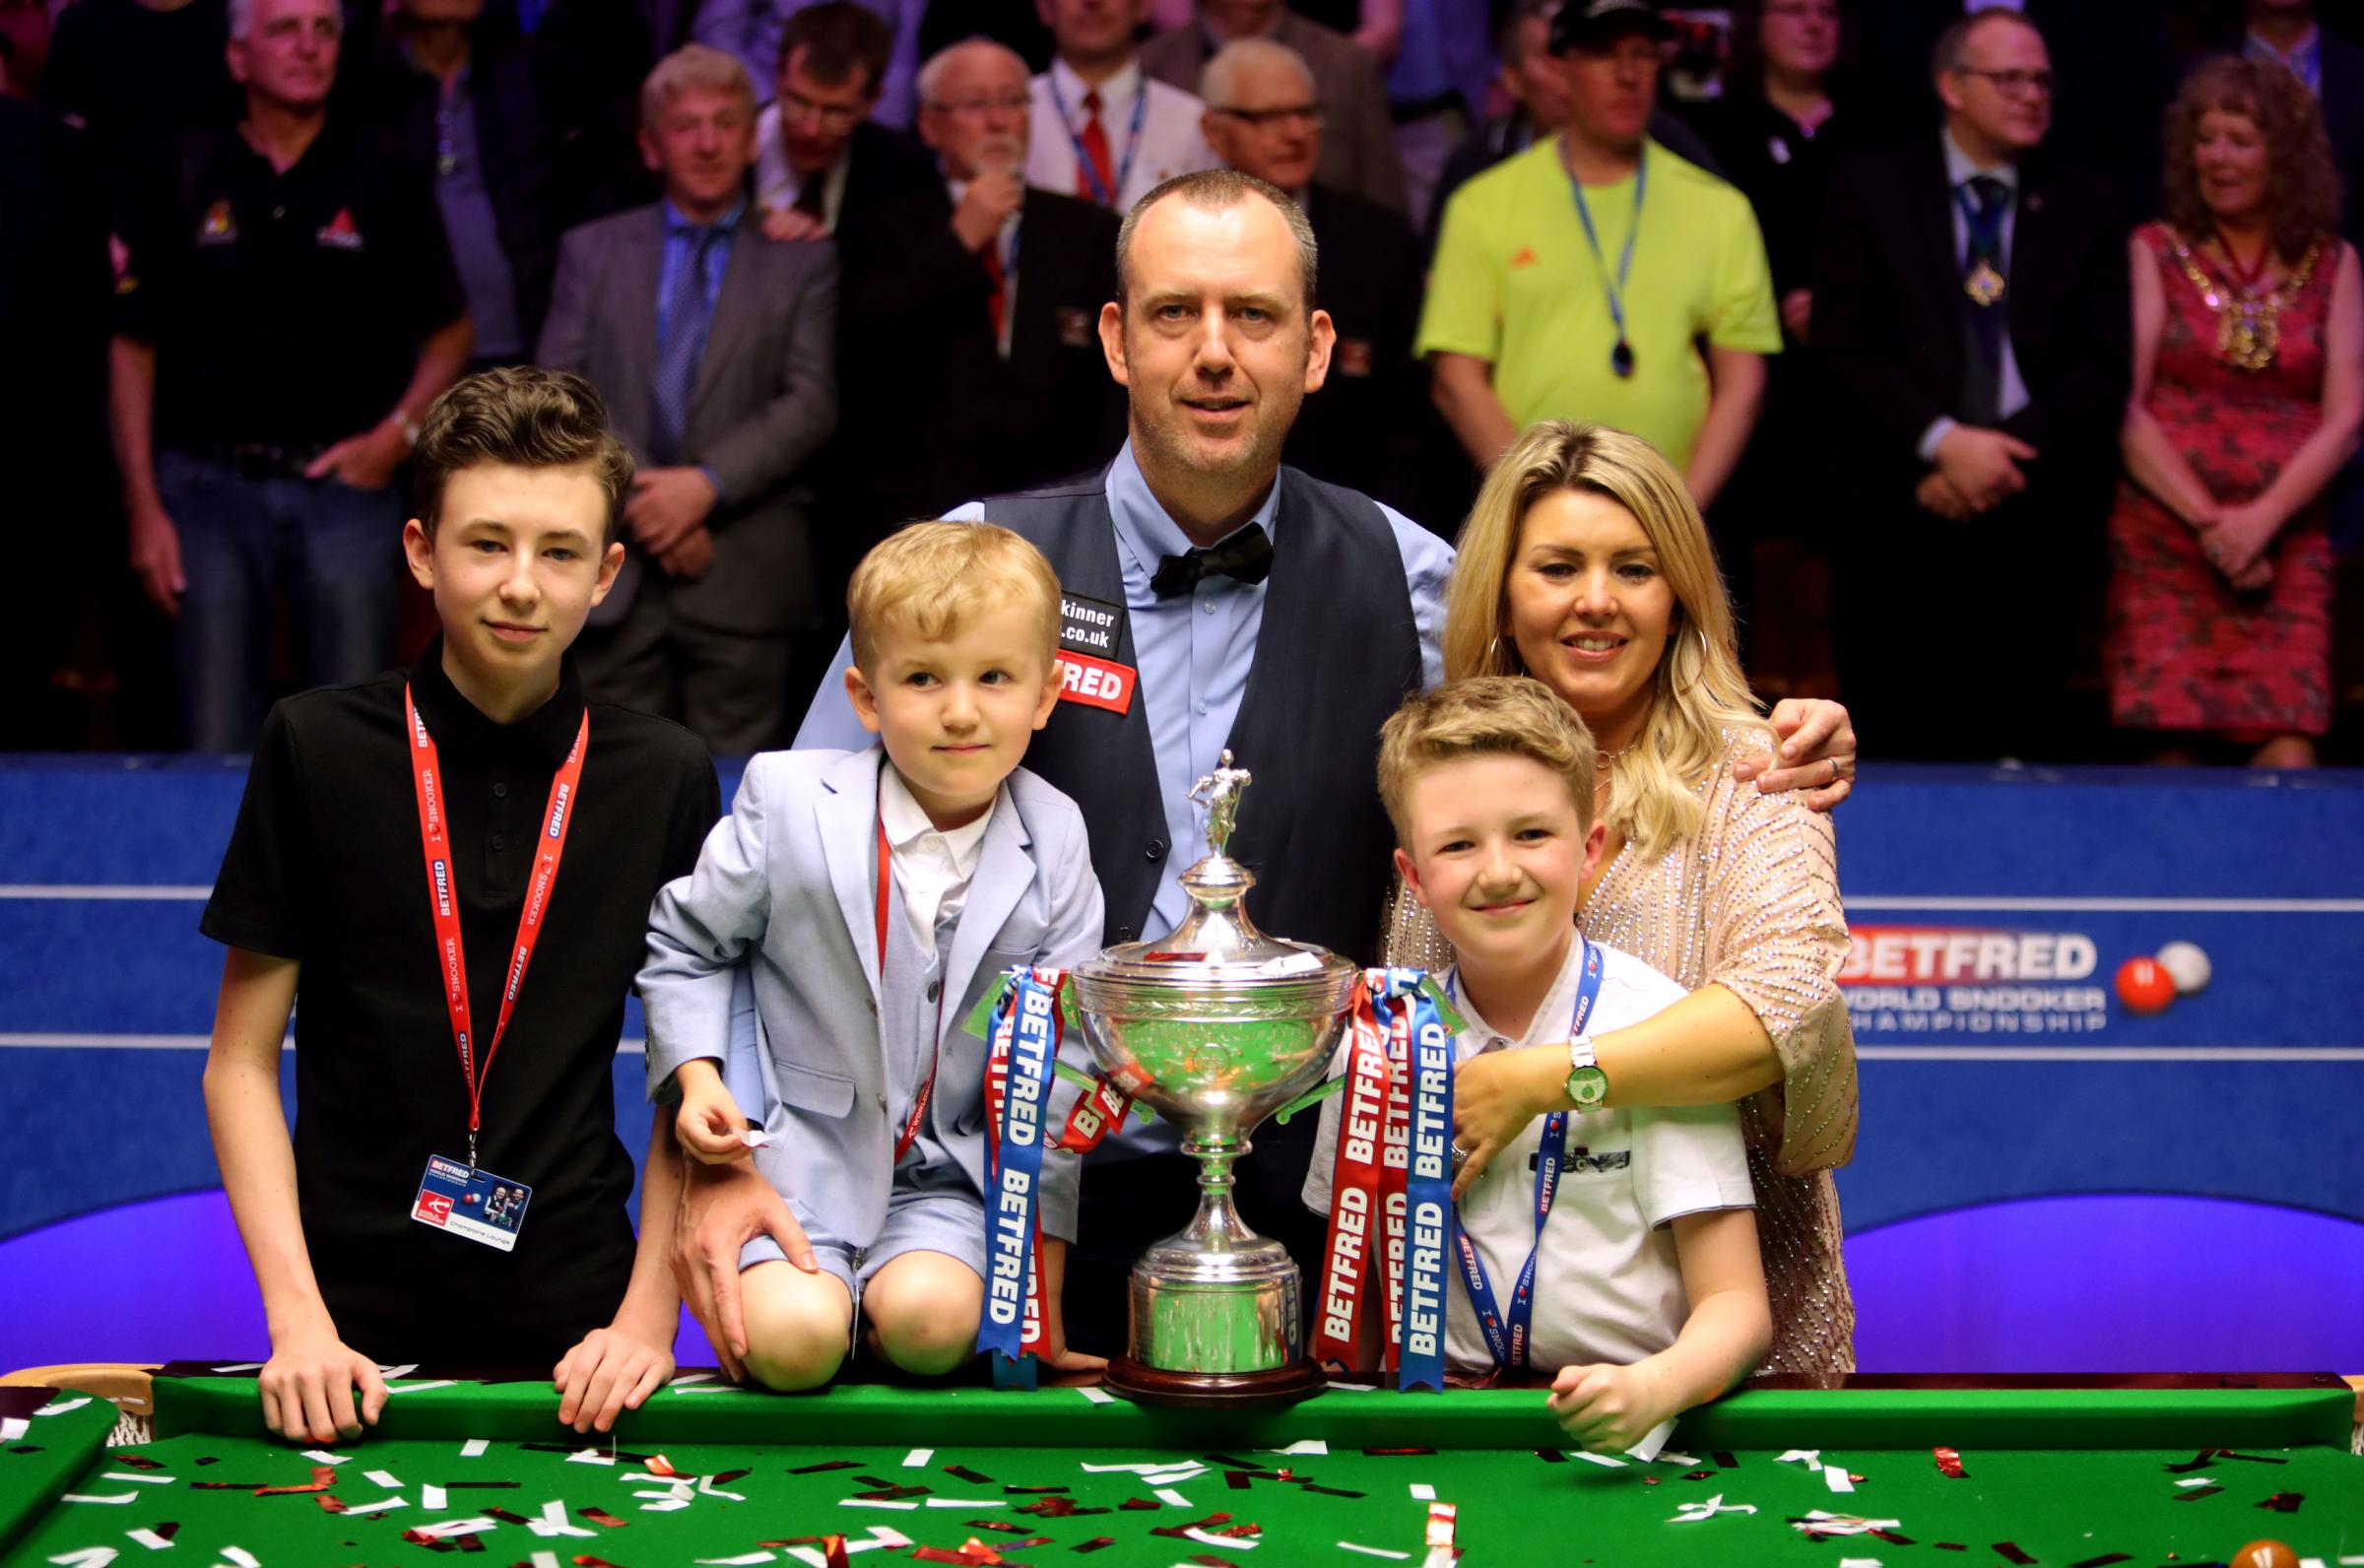 HAPPY BAIZE: Mark Williams and his family celebrate at the Crucible. Picture: Richard Sellers/PA Wire